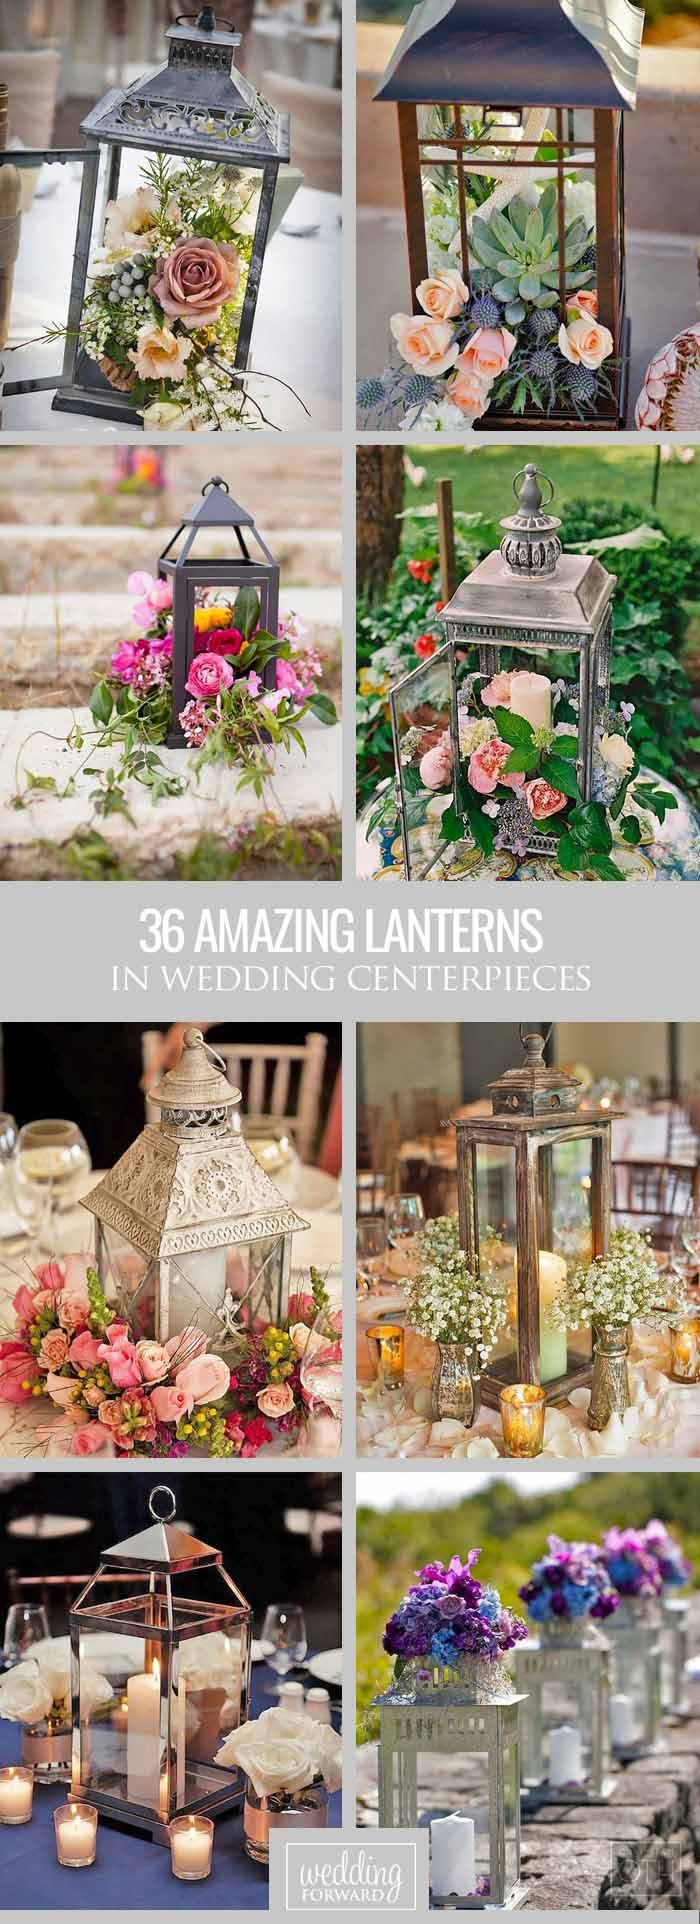 42 amazing lantern wedding centerpiece ideas lantern wedding 36 amazing lantern wedding centerpiece ideas we propose to consider lantern wedding centerpiece ideas with junglespirit Image collections